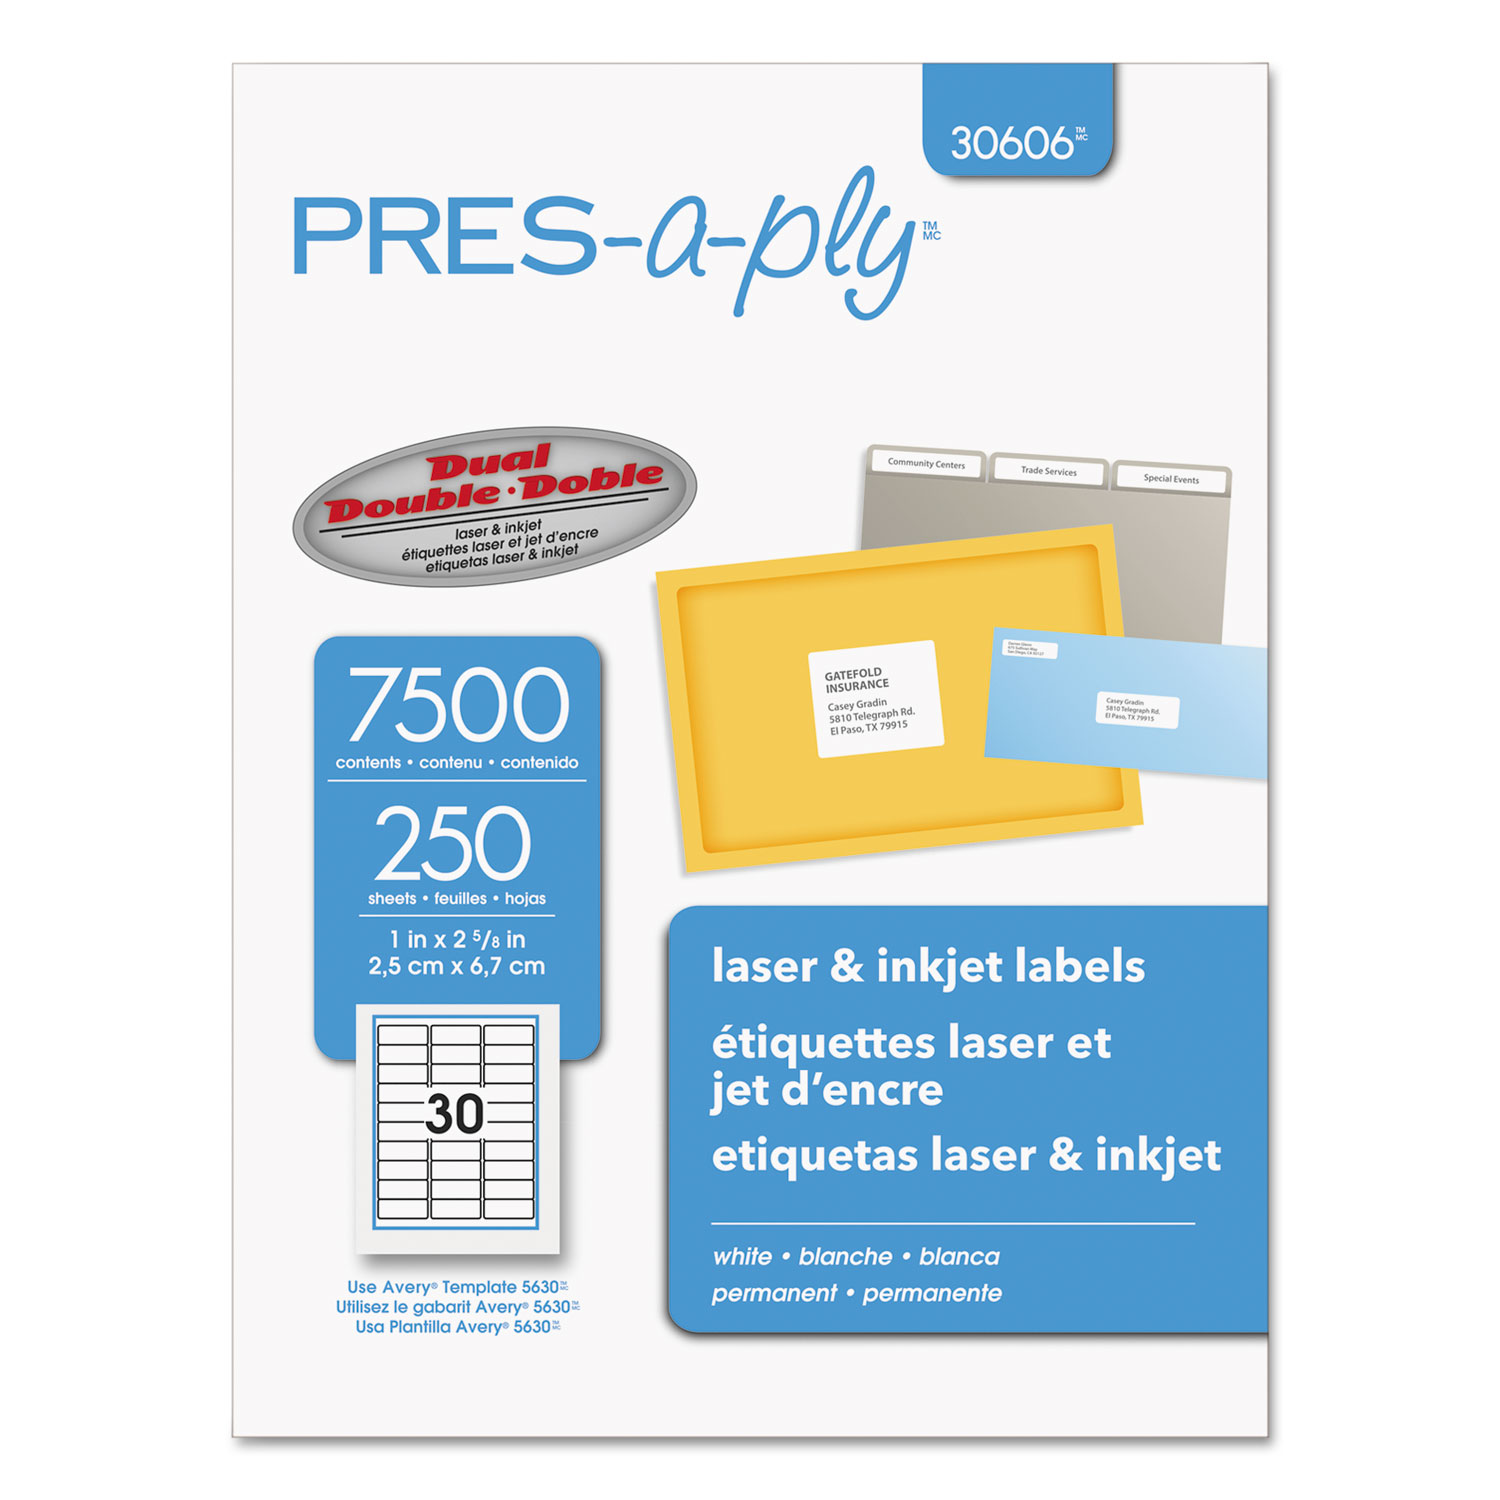 "AVERY PRES-a-ply Labels for Laser and Inkjet Printers, 1"" x 2-5/8"" labels, 8-1/2"" x 11"" sheets, White, Permanent, 30-up, 250-sheets, 7500/BX"